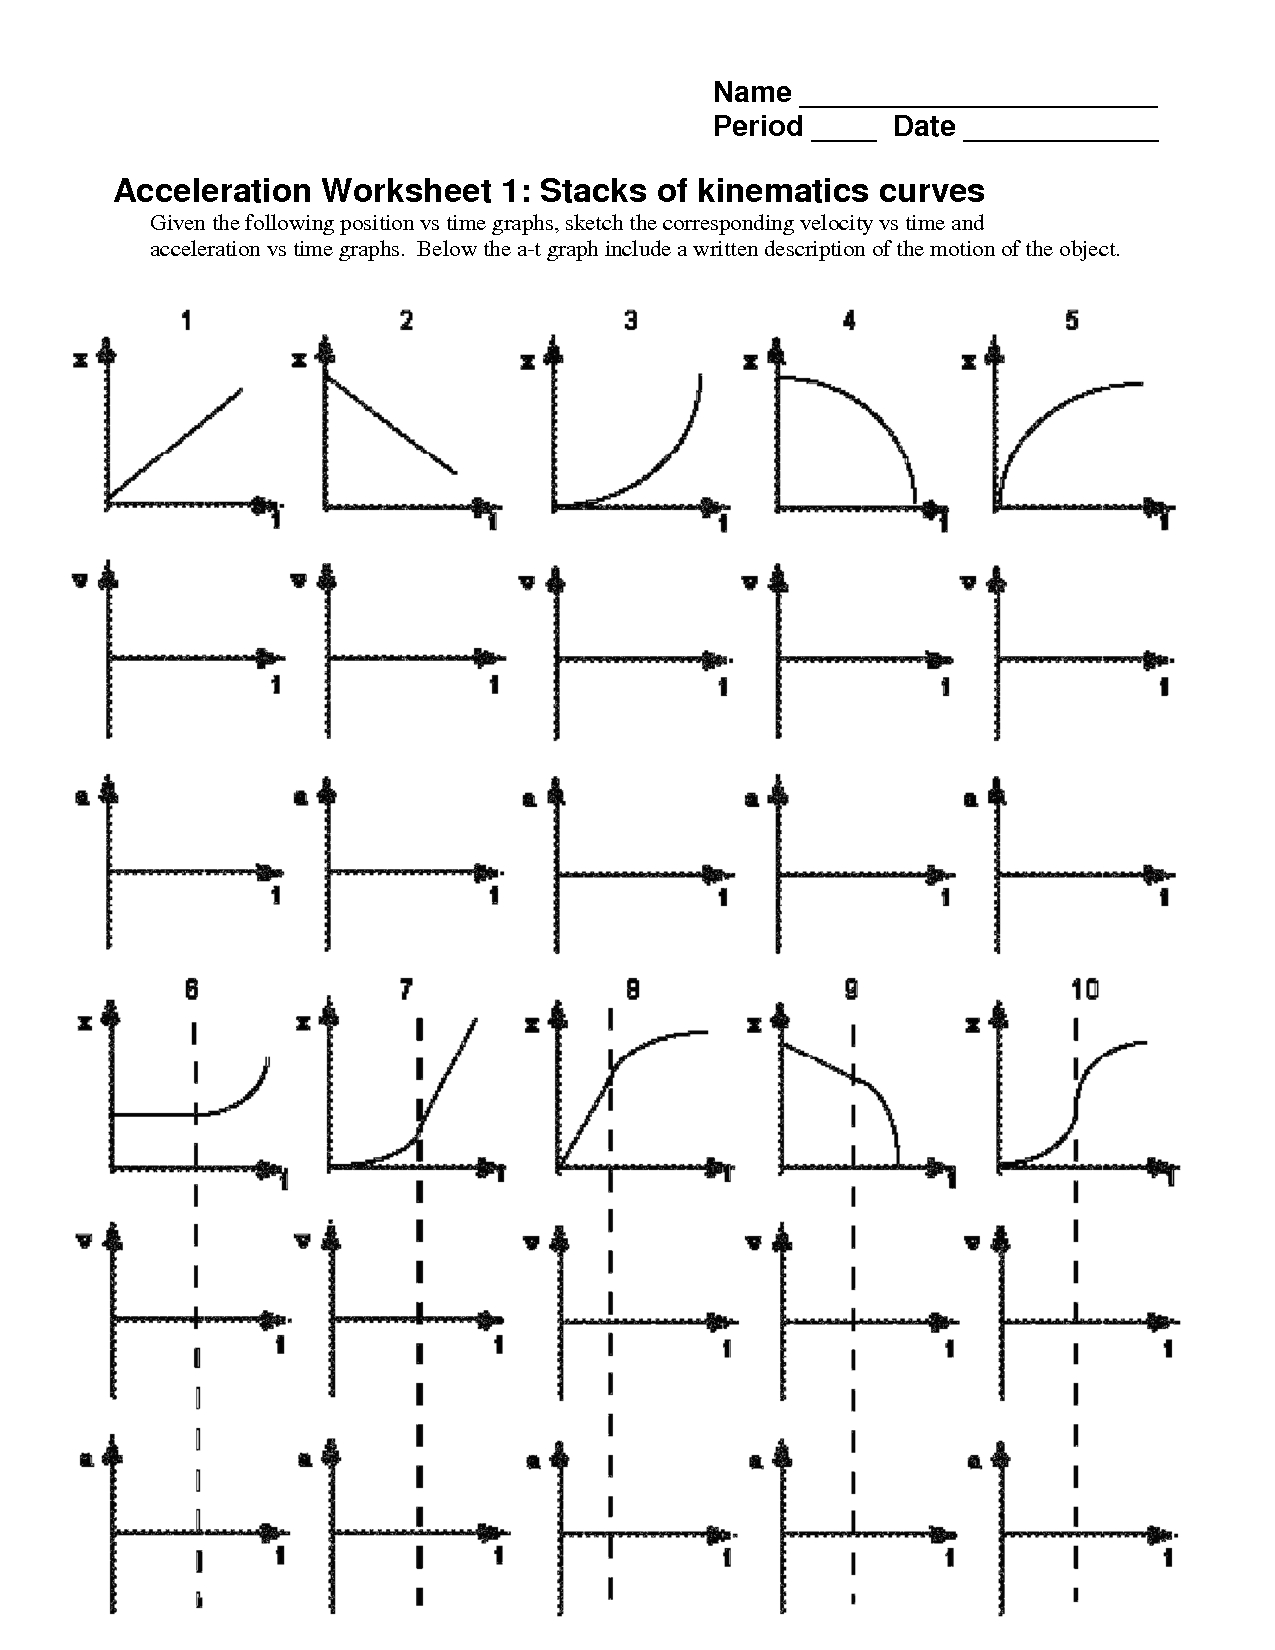 Kinematics Motion Graphs Worksheet Answers